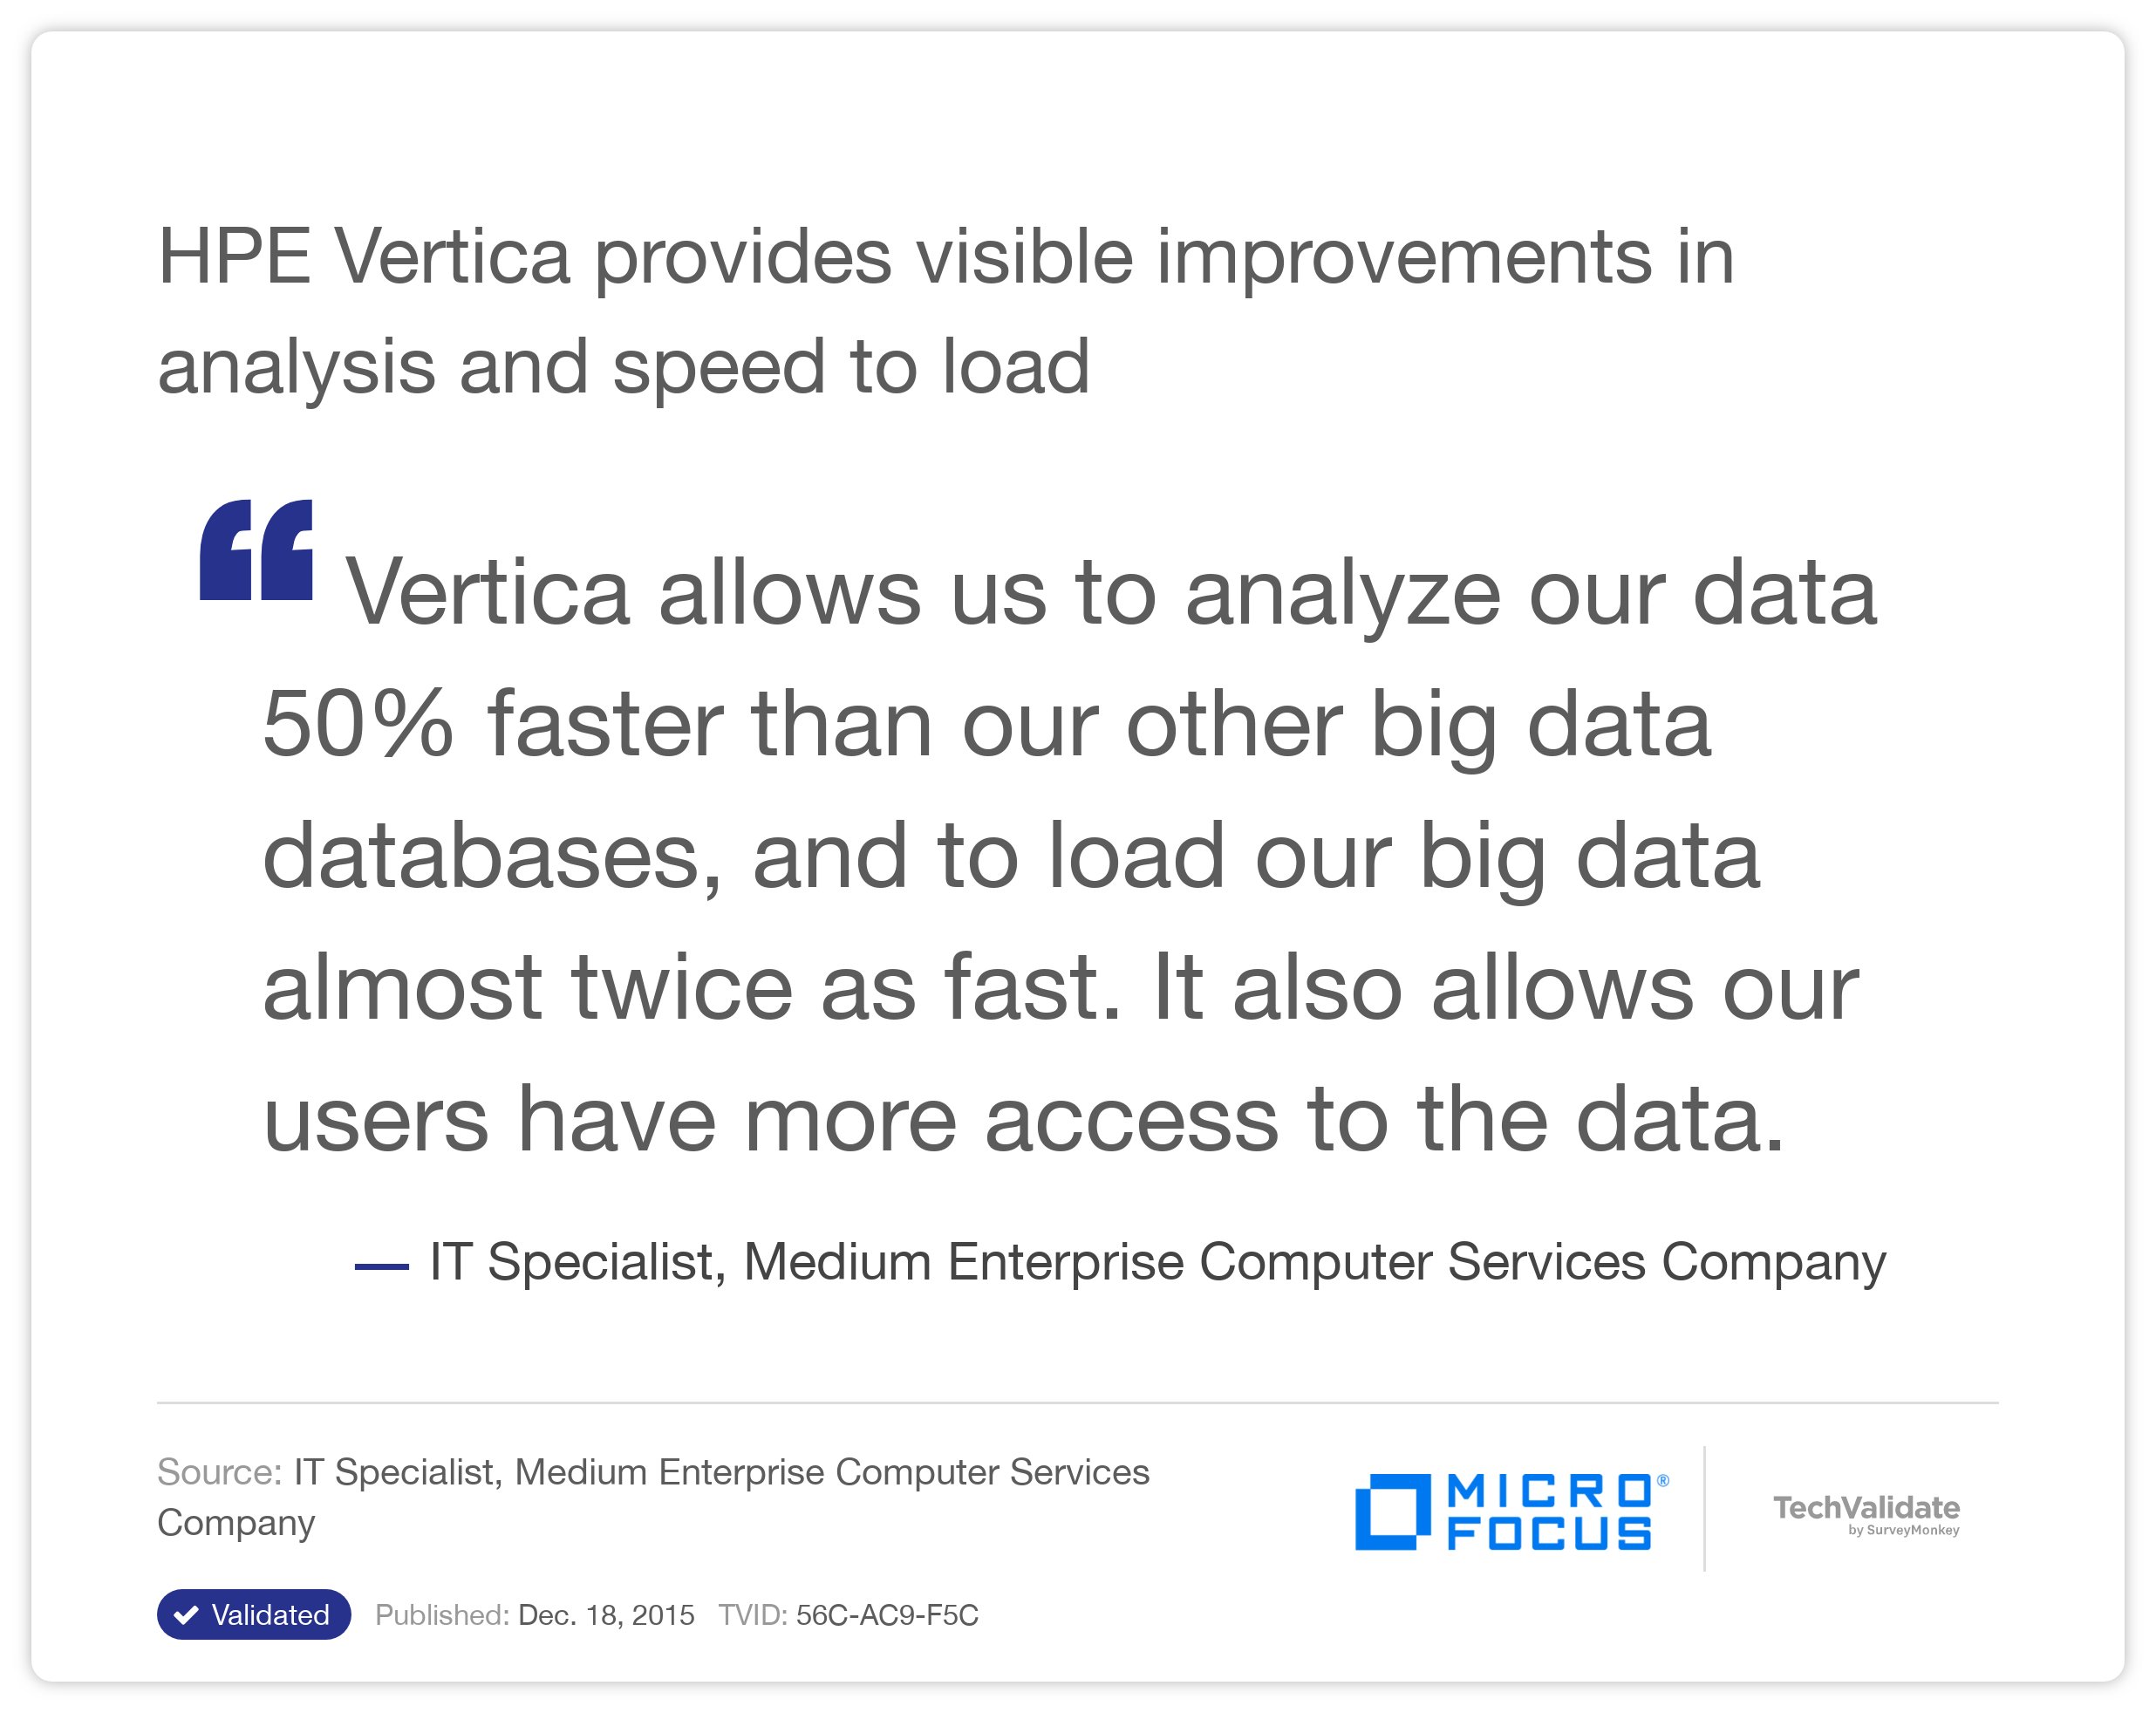 HP Vertica provides visible improvements in analysis and speed to load